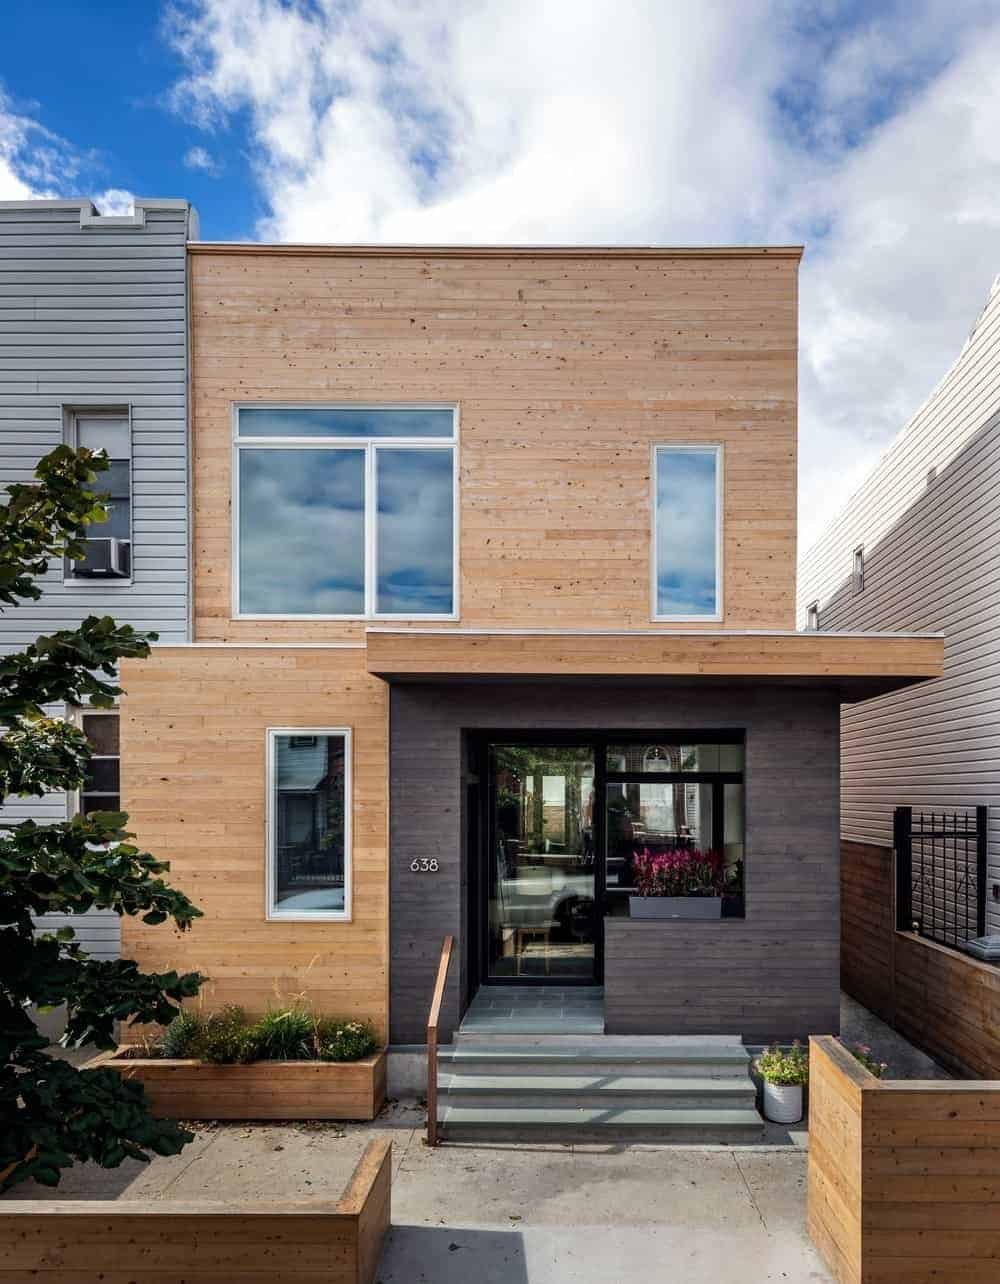 A modern house with a wooden exterior and has a stylish entry.